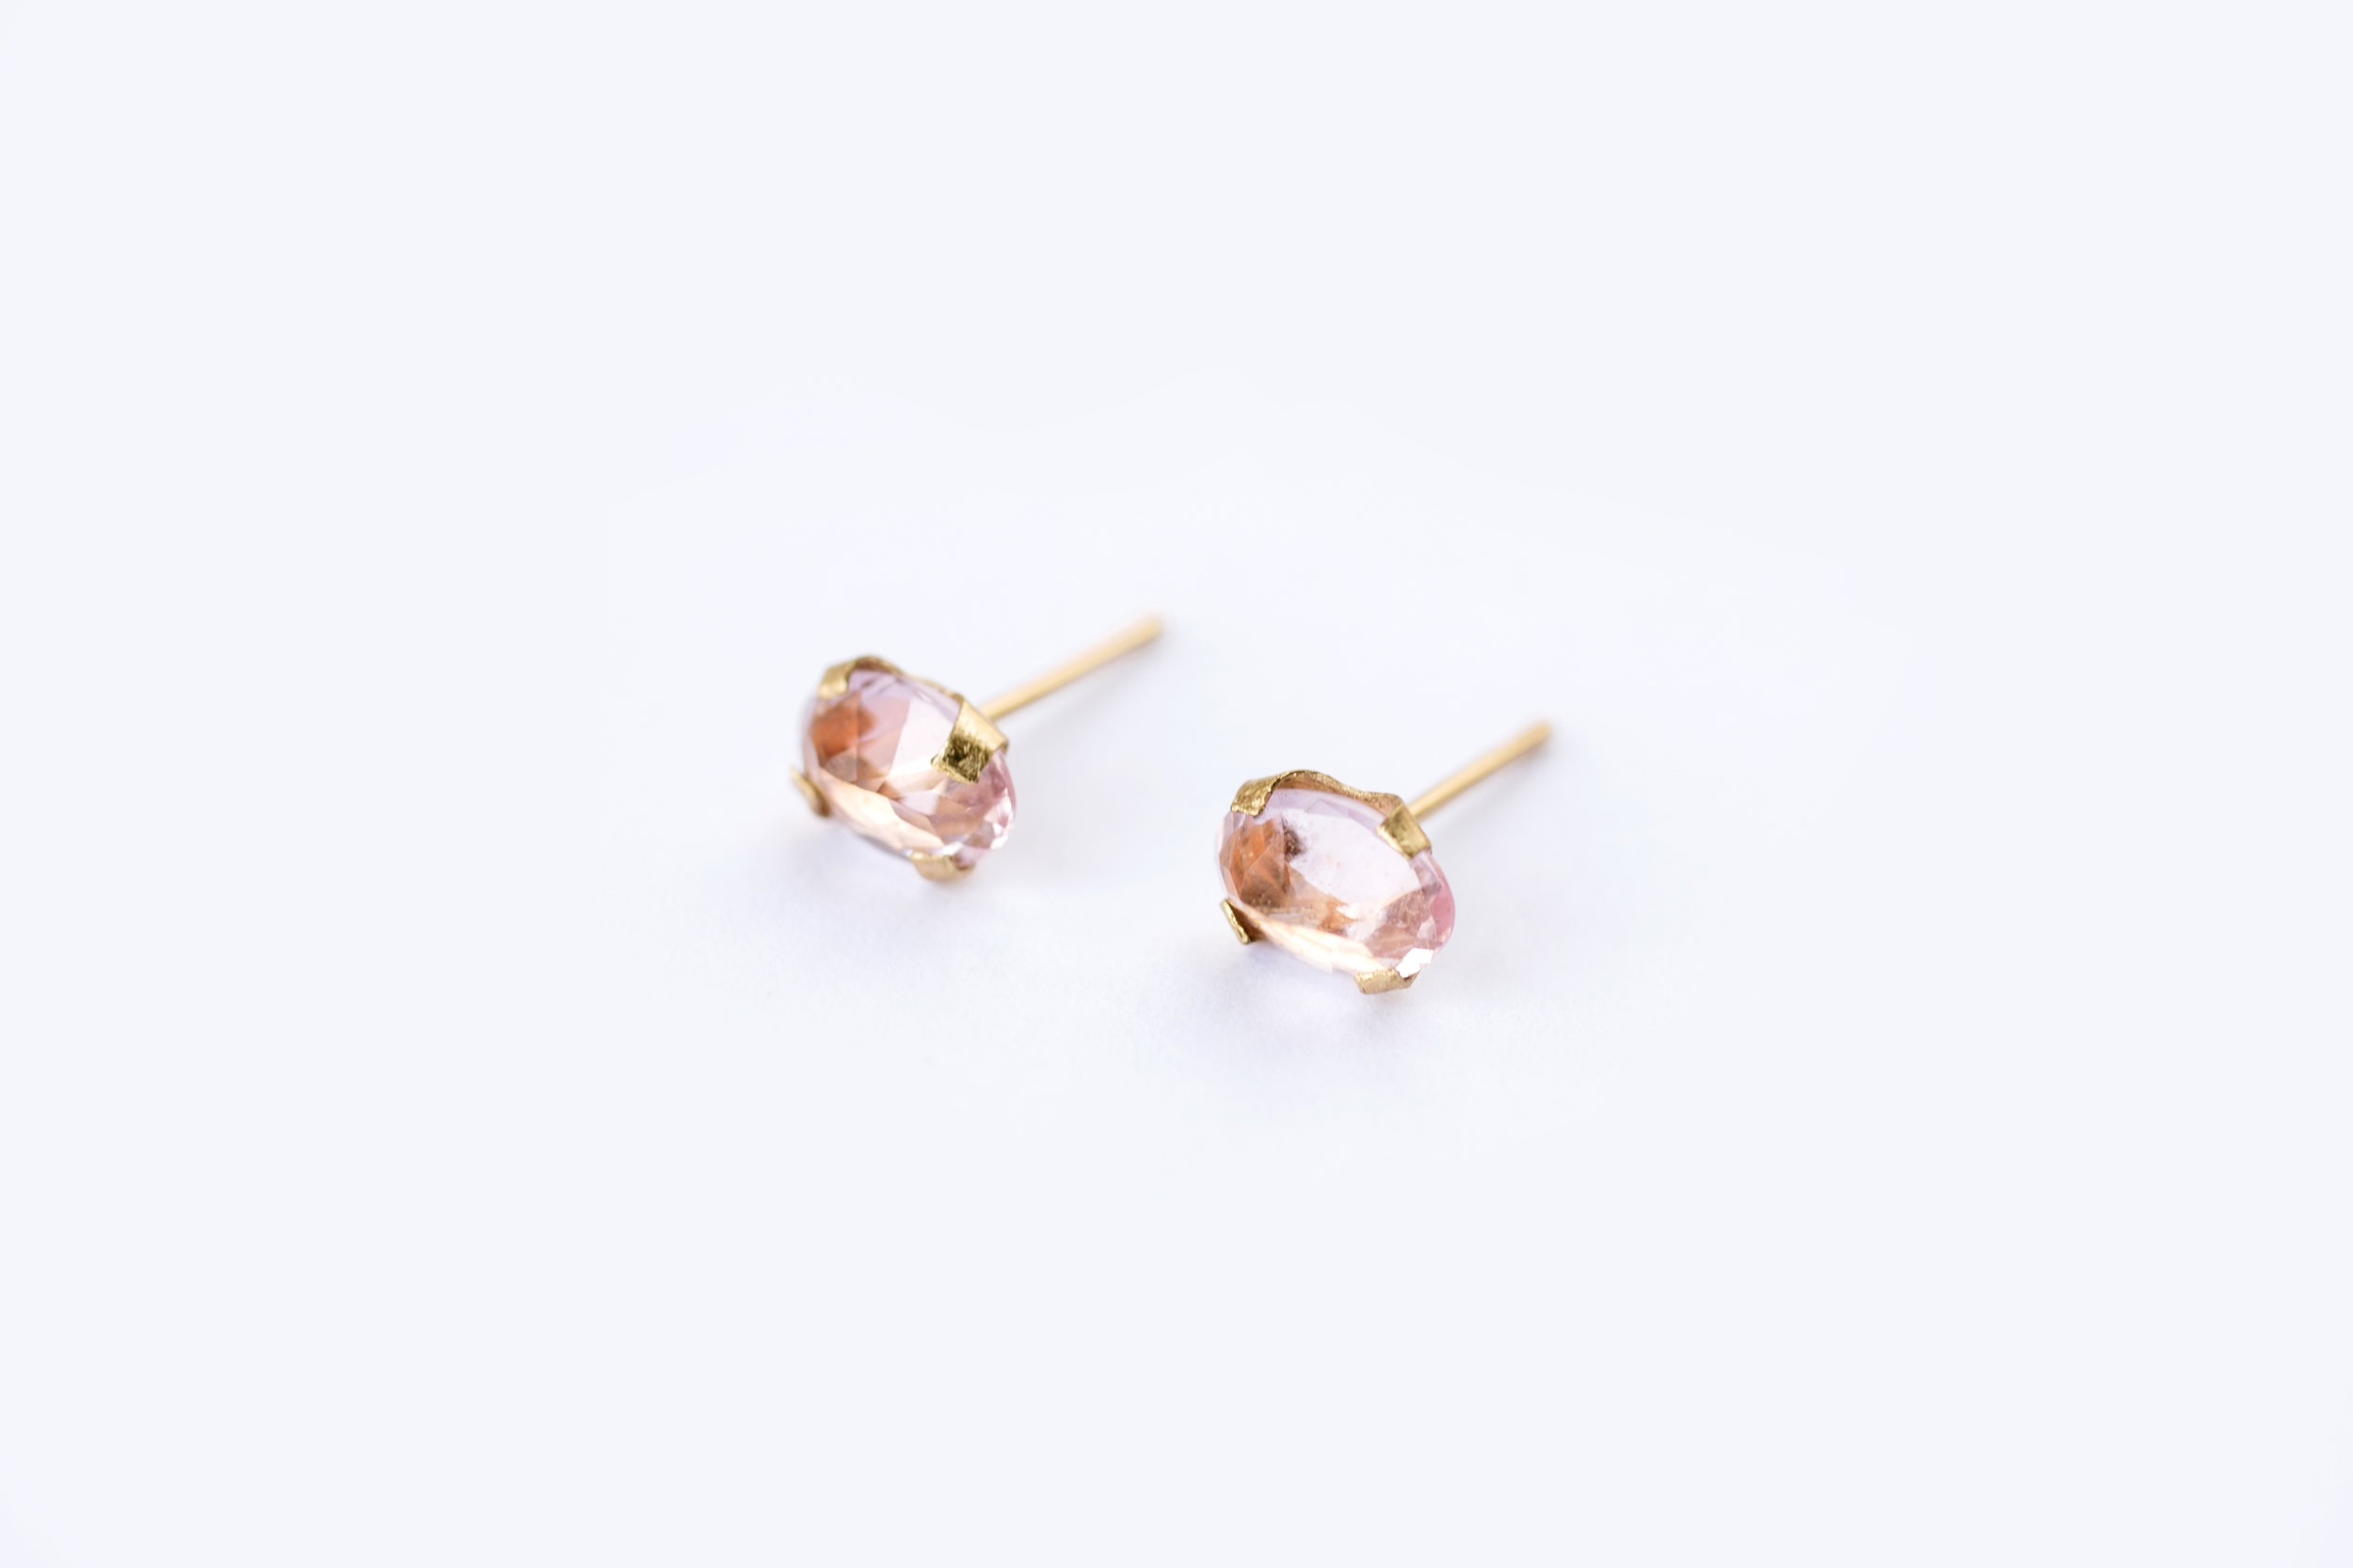 jewellery earrings gold stud rose cut diamond svtm earring online a morganite fancy